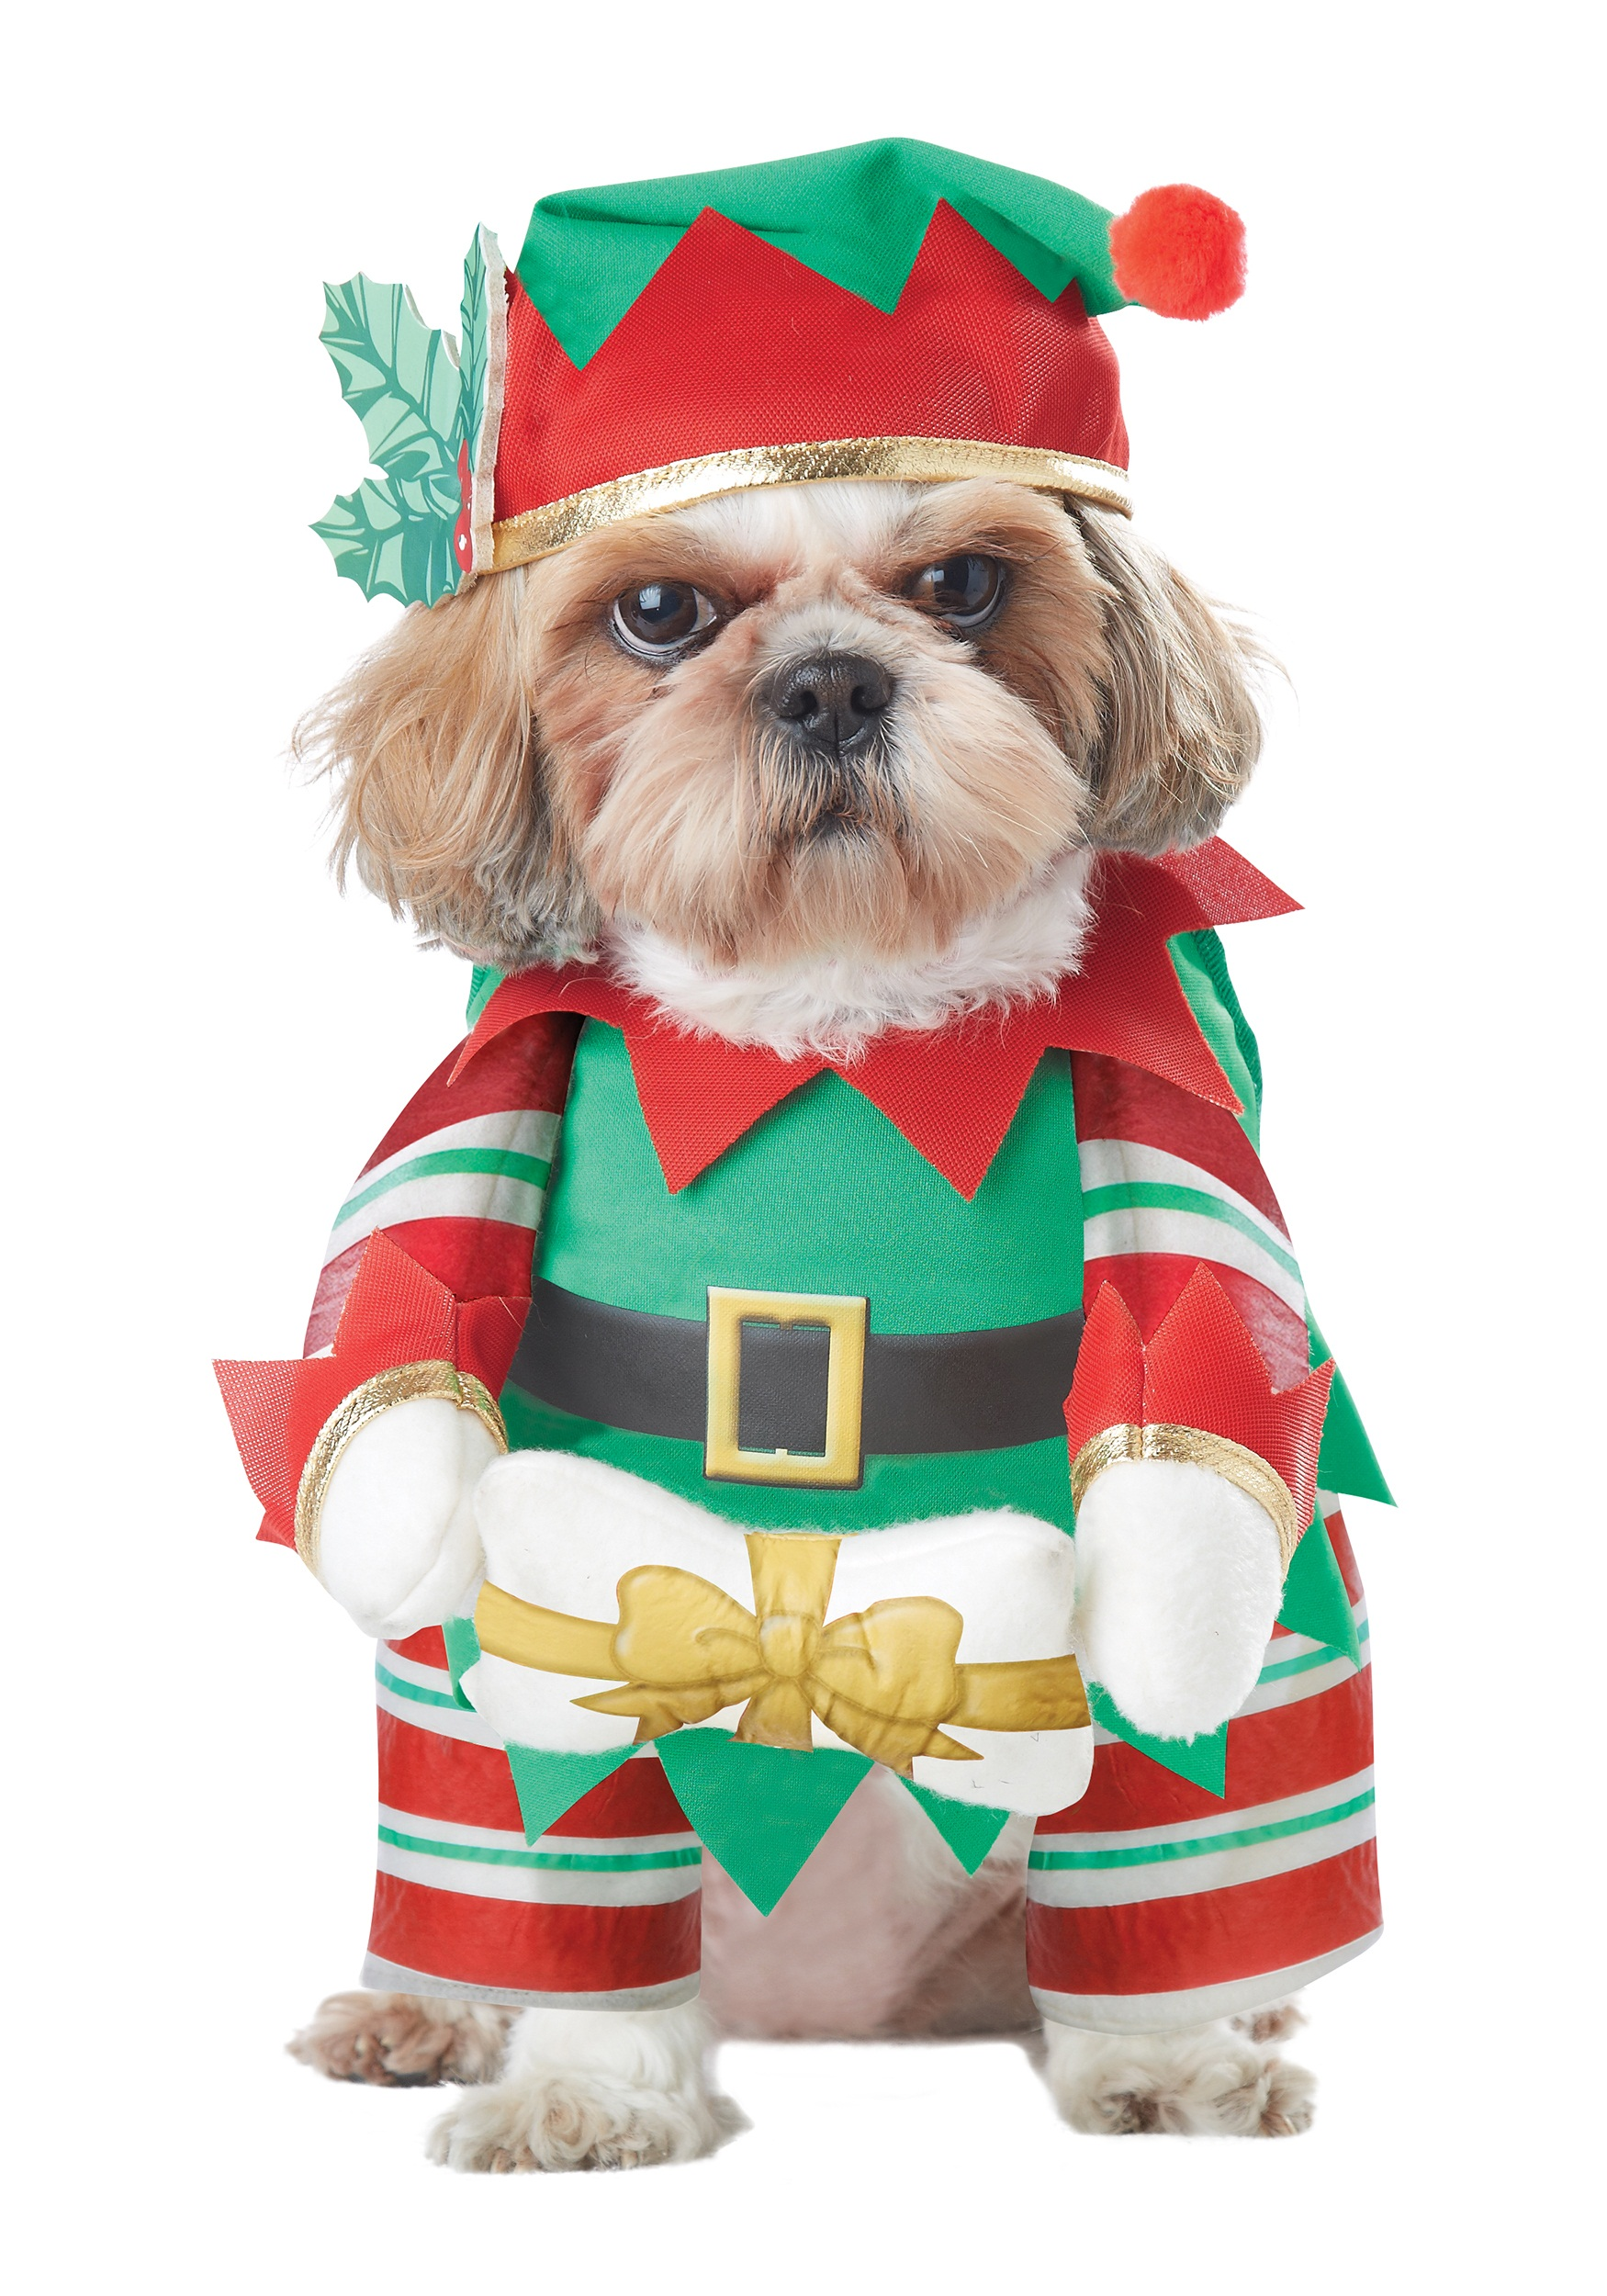 Dog Elf Suit photo - 1